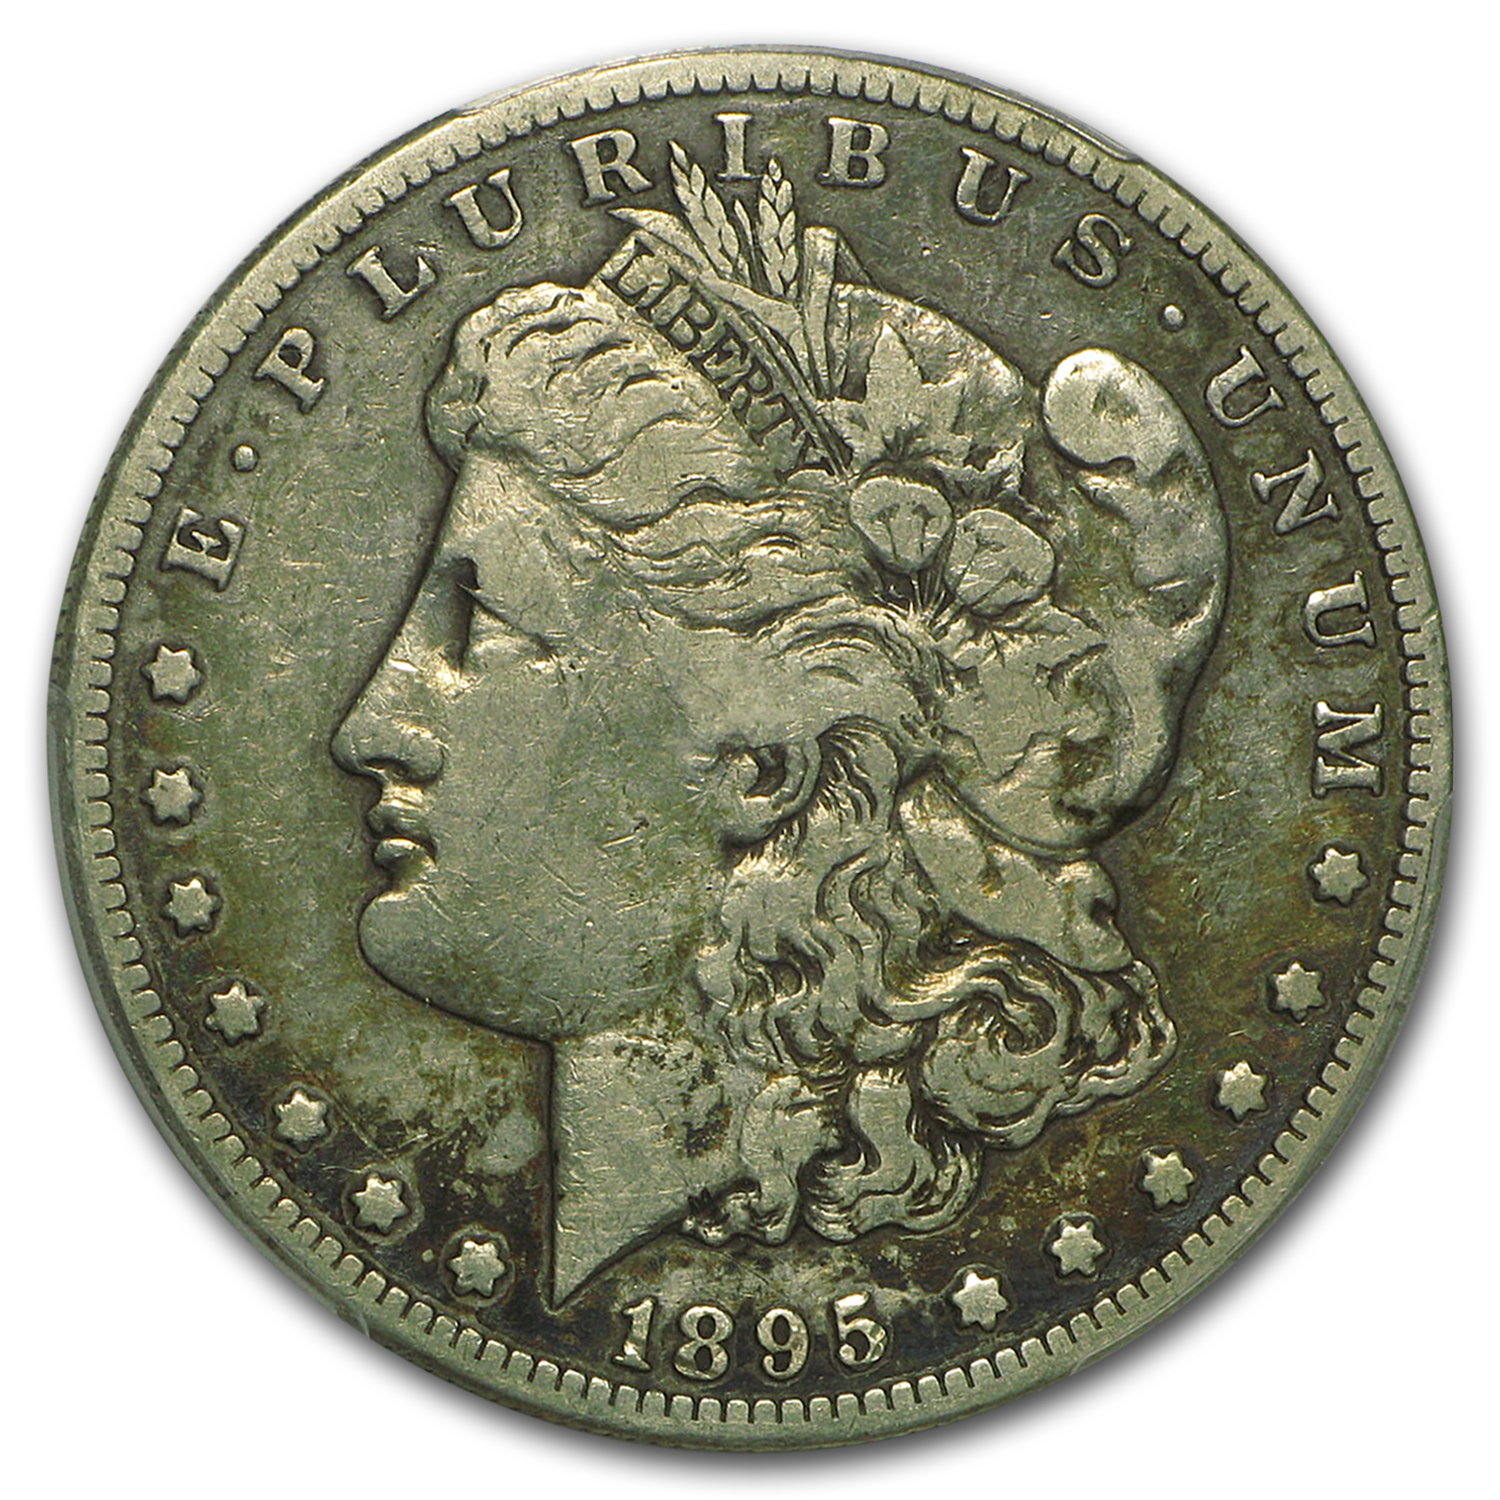 1895-S Morgan Dollar - Fine